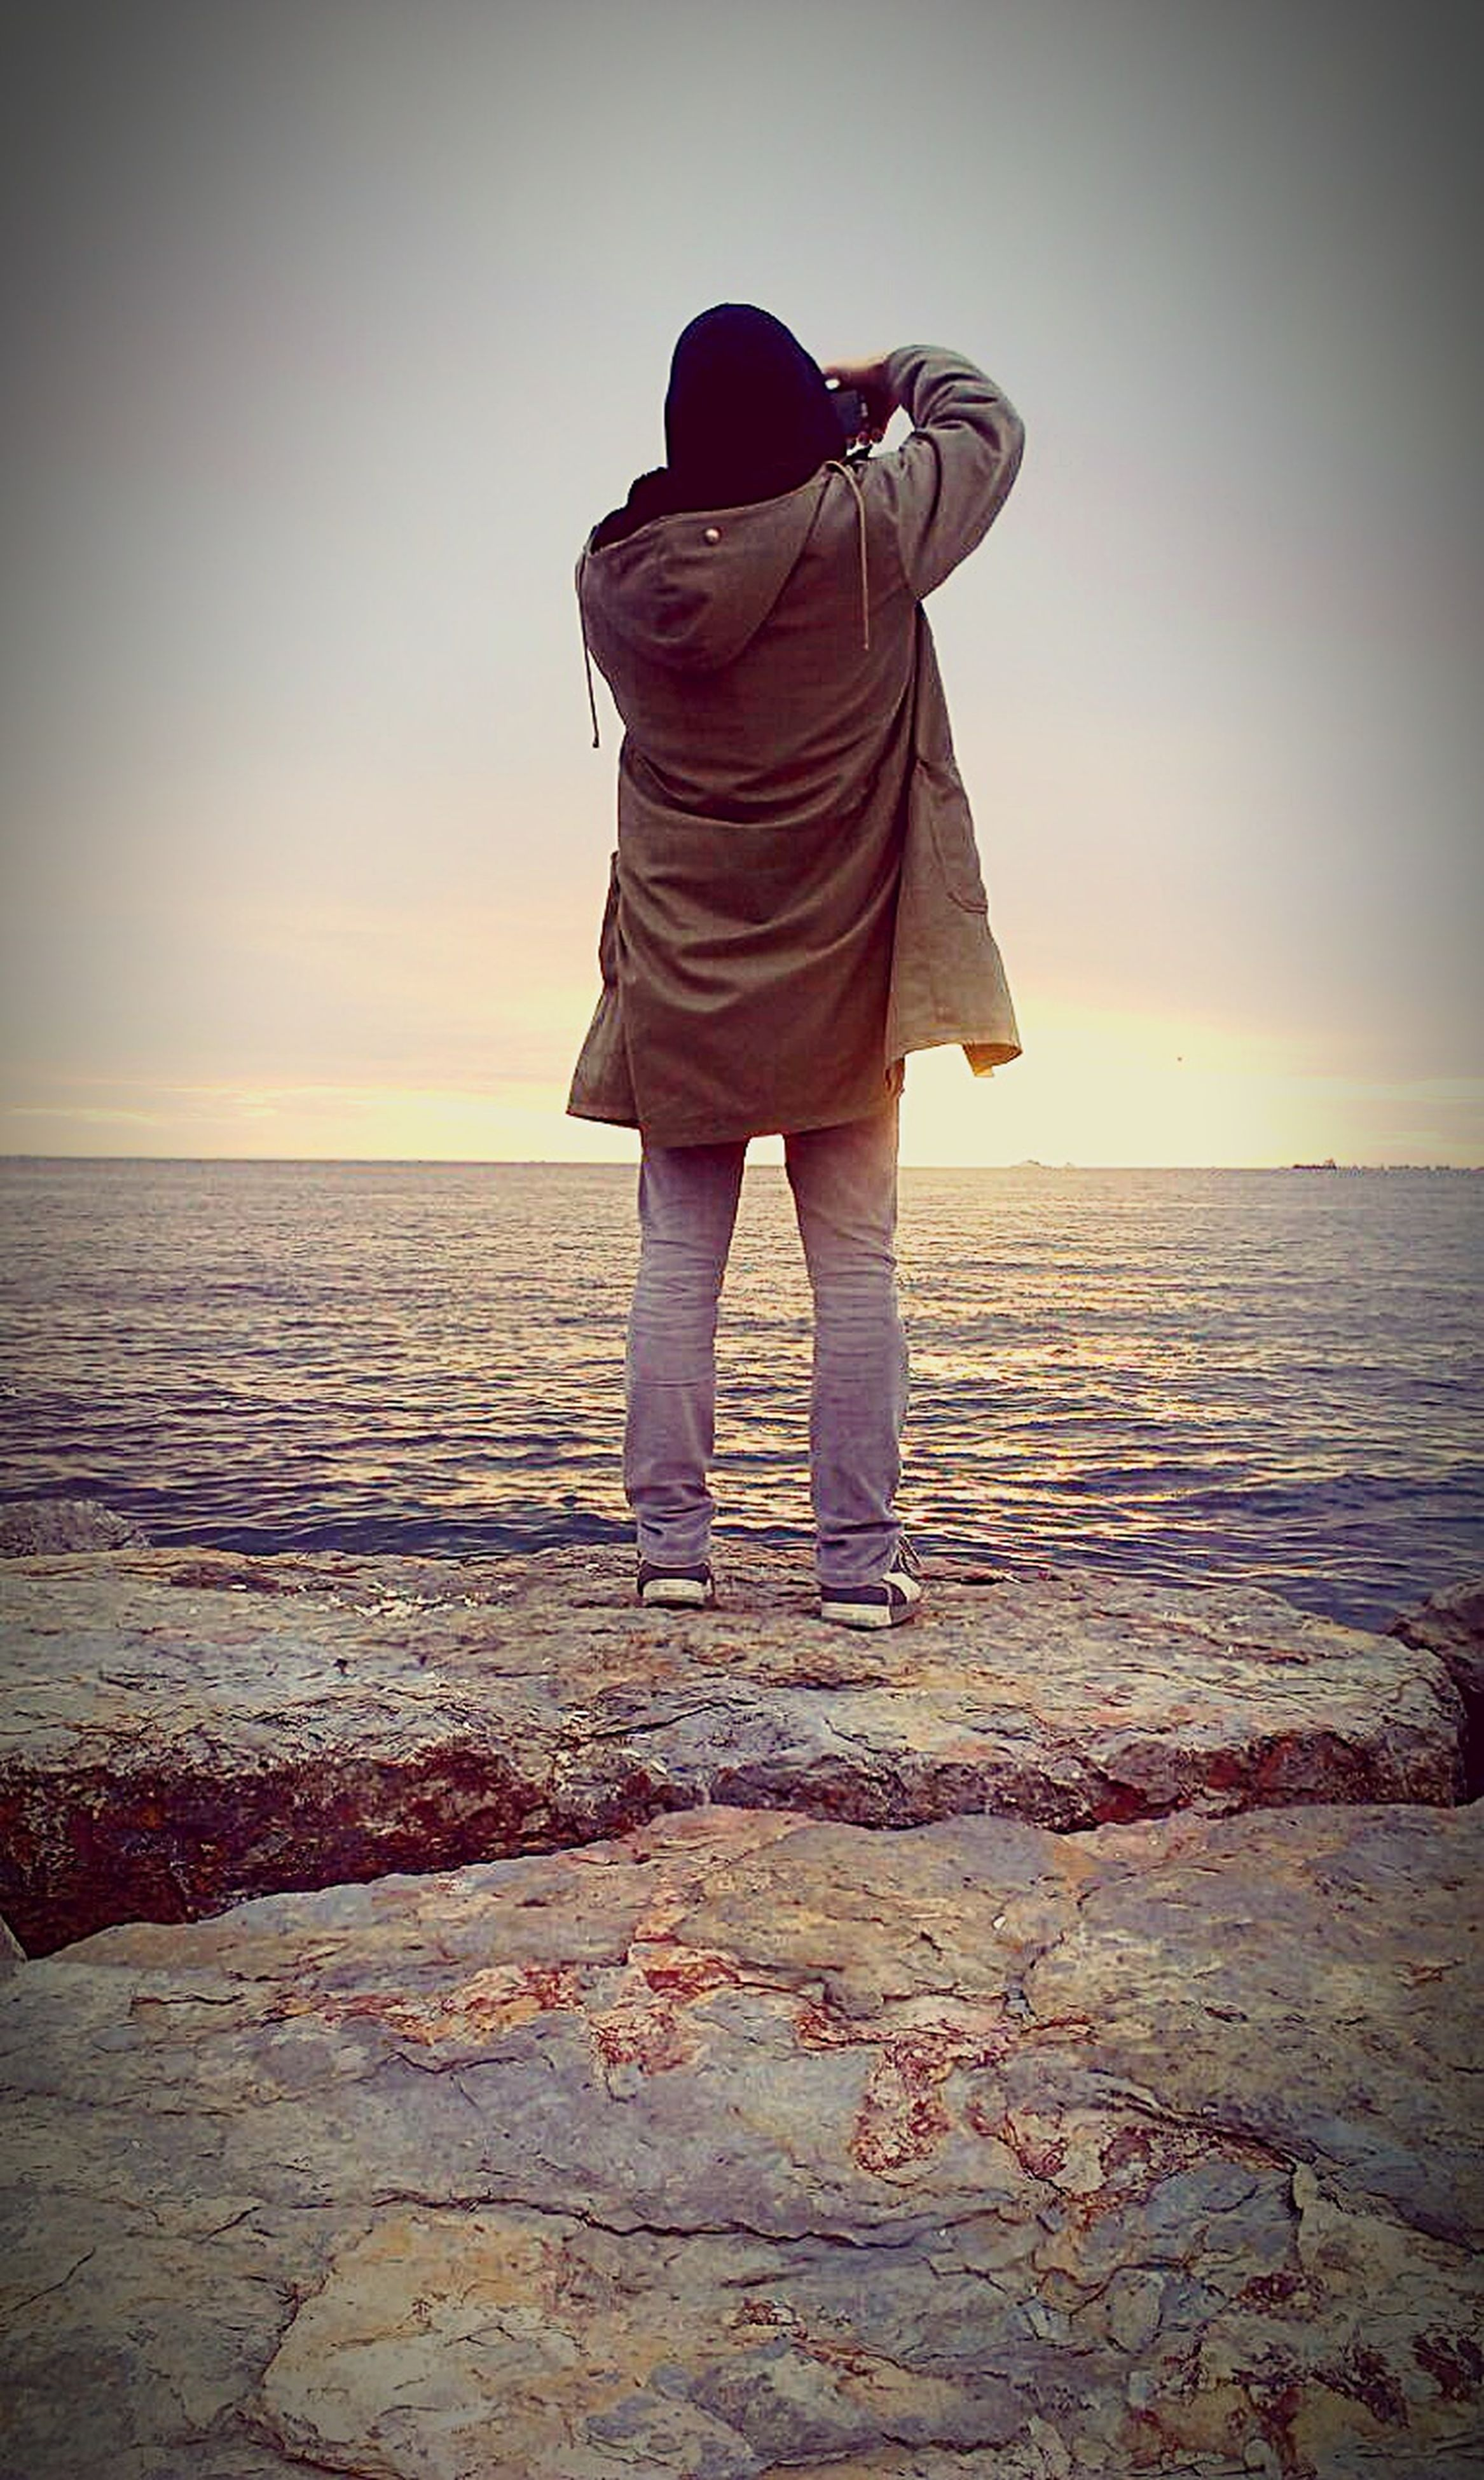 sea, water, rear view, horizon over water, standing, full length, beach, lifestyles, leisure activity, tranquil scene, tranquility, sunset, scenics, shore, beauty in nature, sky, person, casual clothing